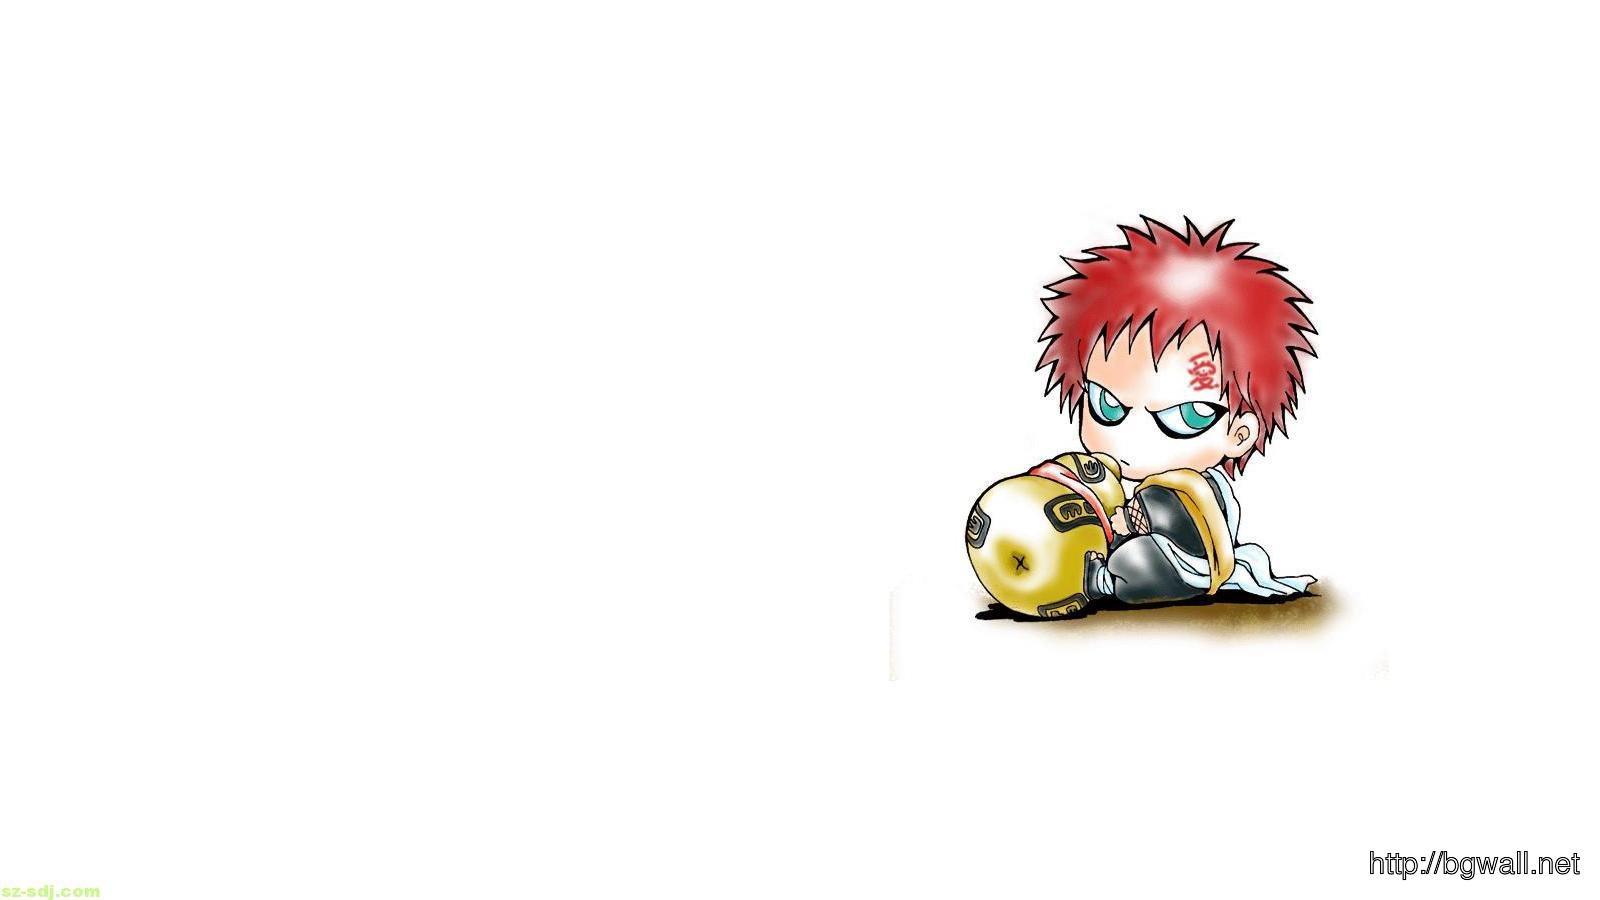 Gaara Chibi Anime Wallpaper Background Wallpaper HD 1600x900